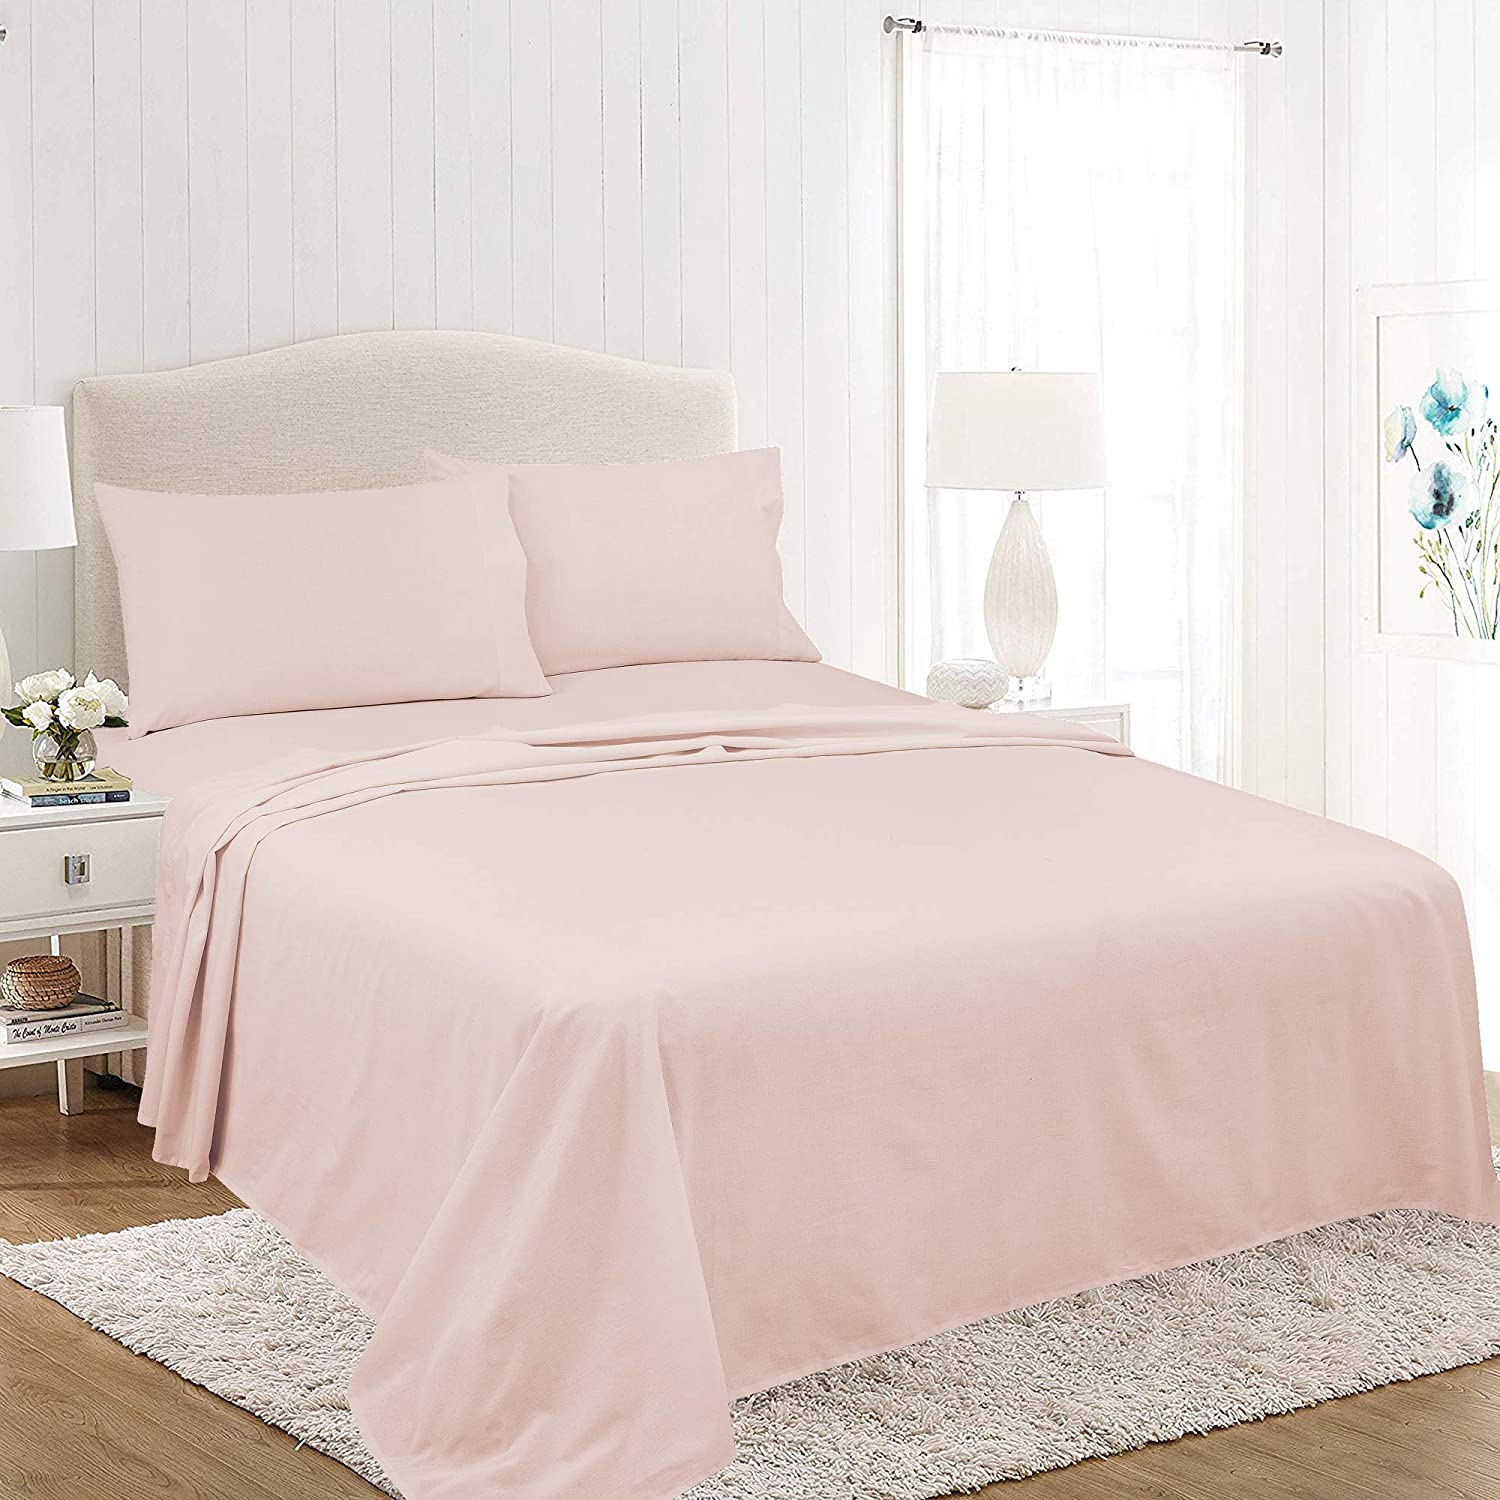 Royale Linens Soft Home Brushed Percale Ultra Soft 100% Cotton, Full 4-Piece Sheet Set, Model Number: A92M46-091-0661